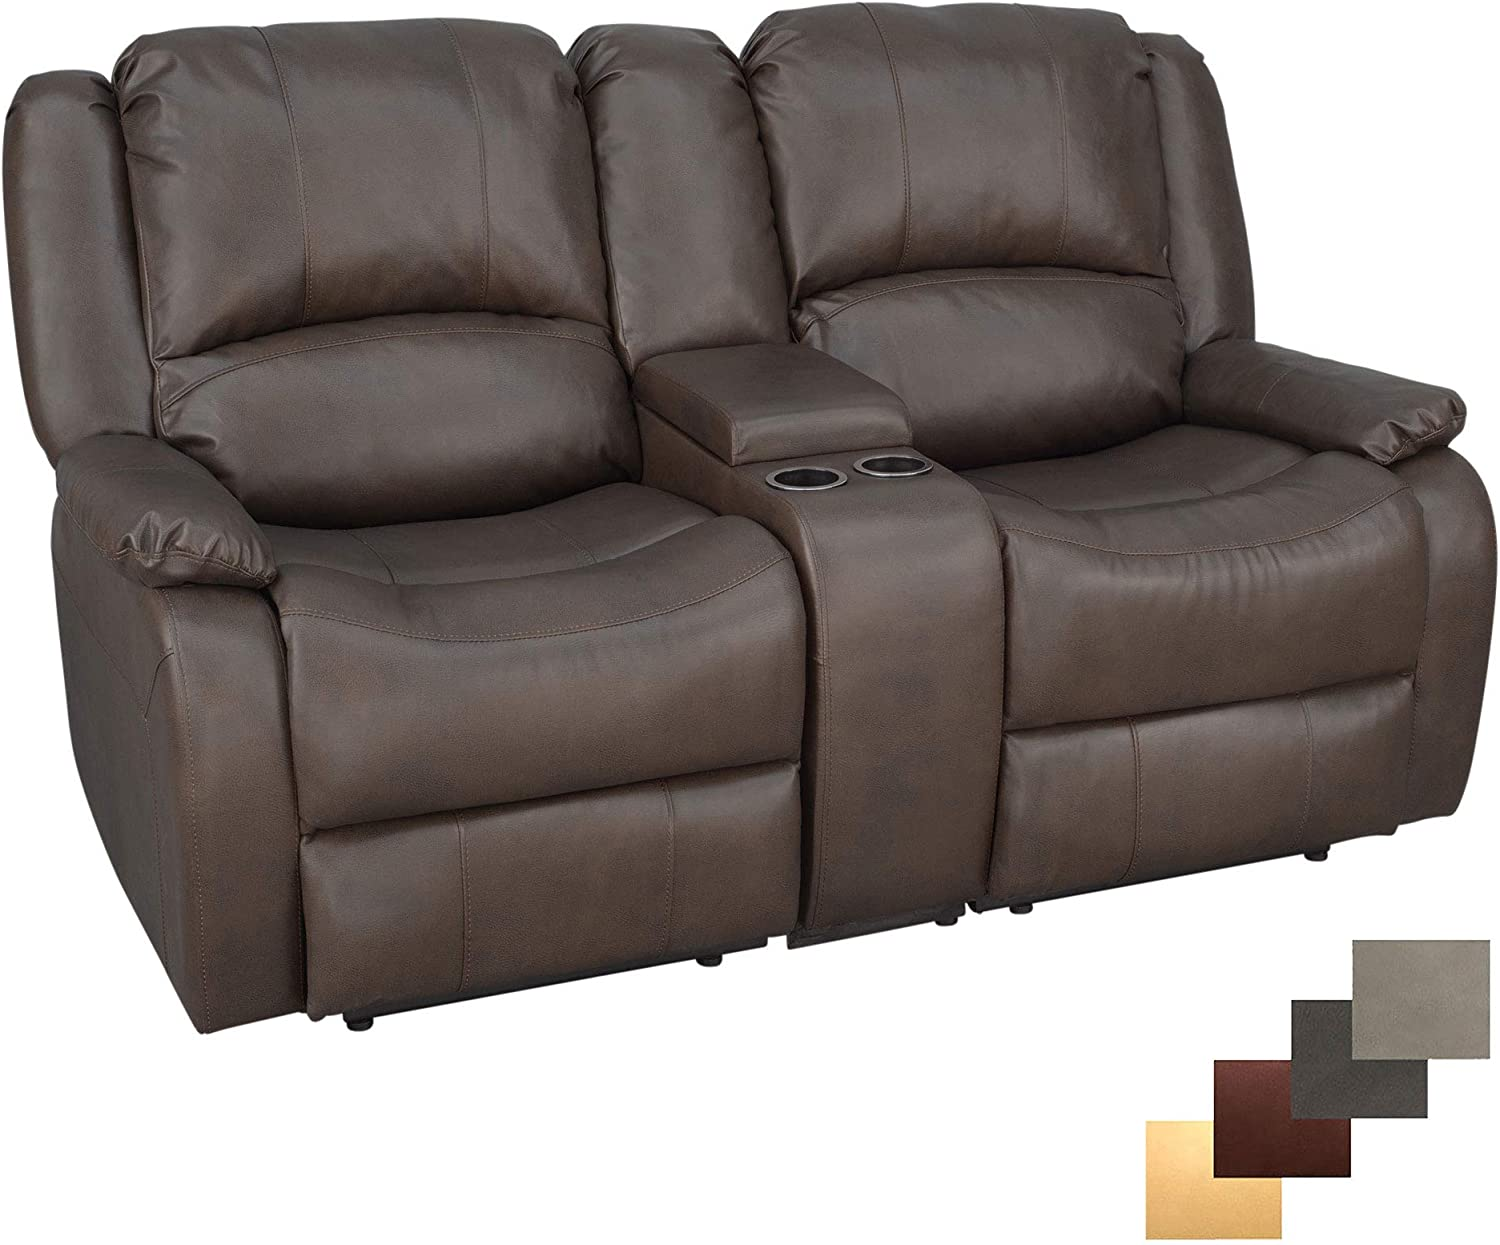 Top 7 Most Comfortable Reclining Sofa [ Buying Guide-2021 ] 3